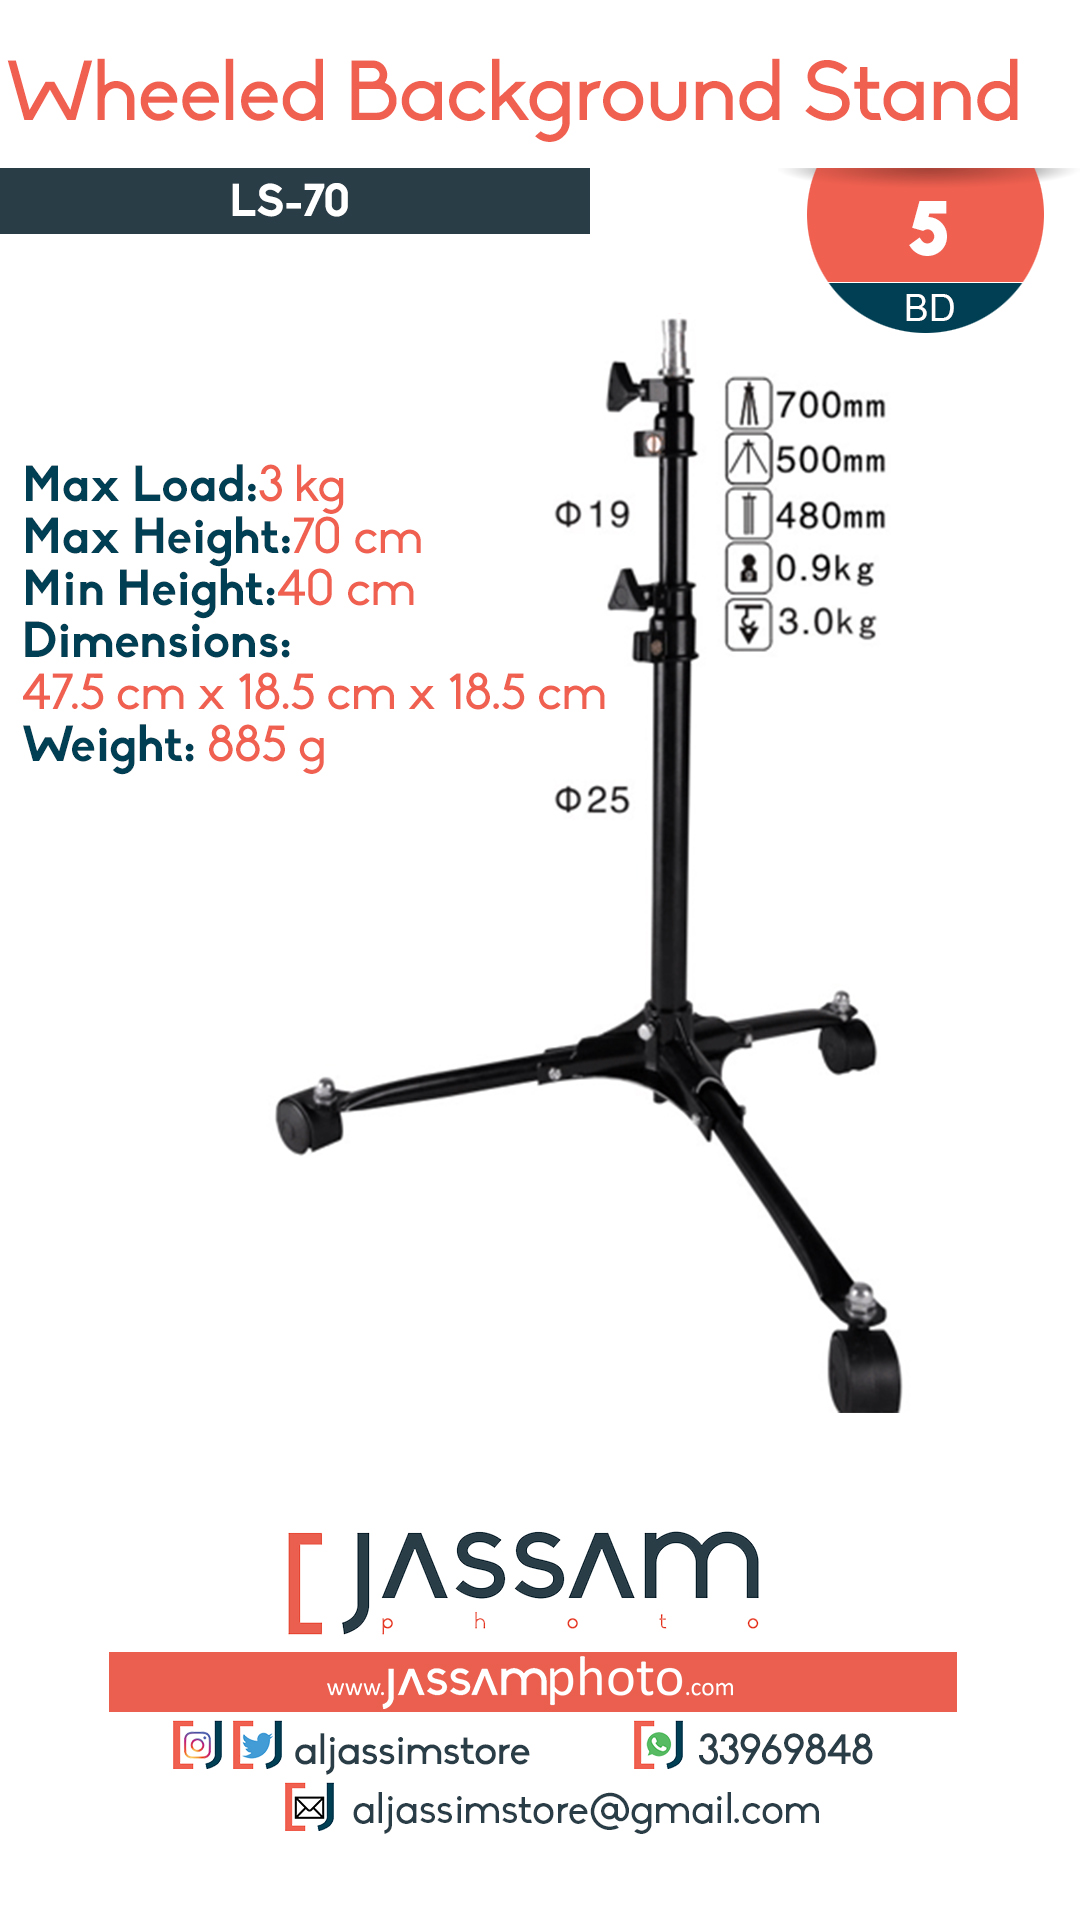 Wheeled Background Stand LS-70